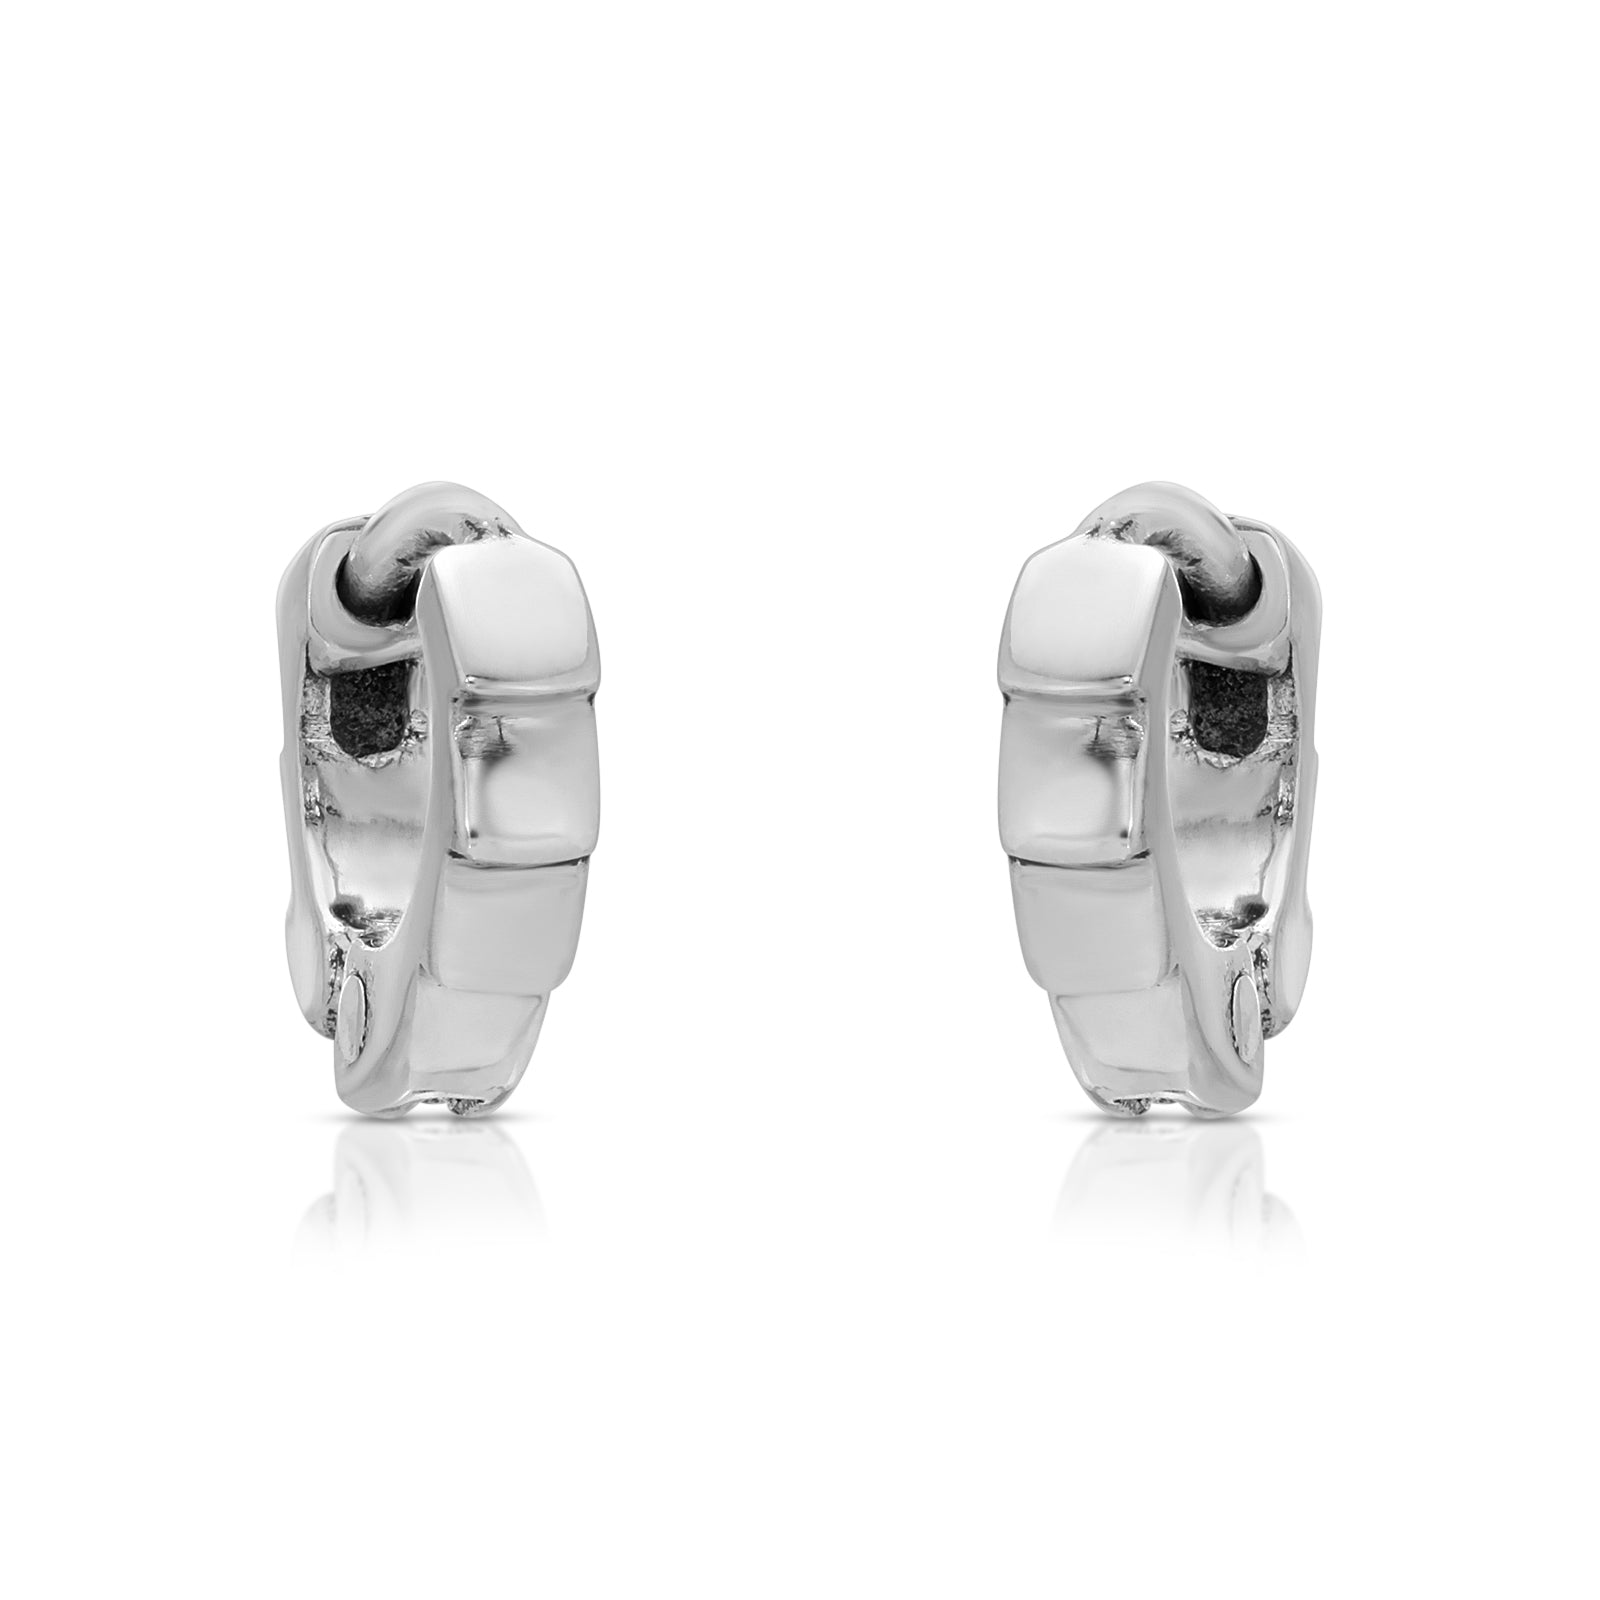 Up-Scaled Cuff Earrings - The W Brothers